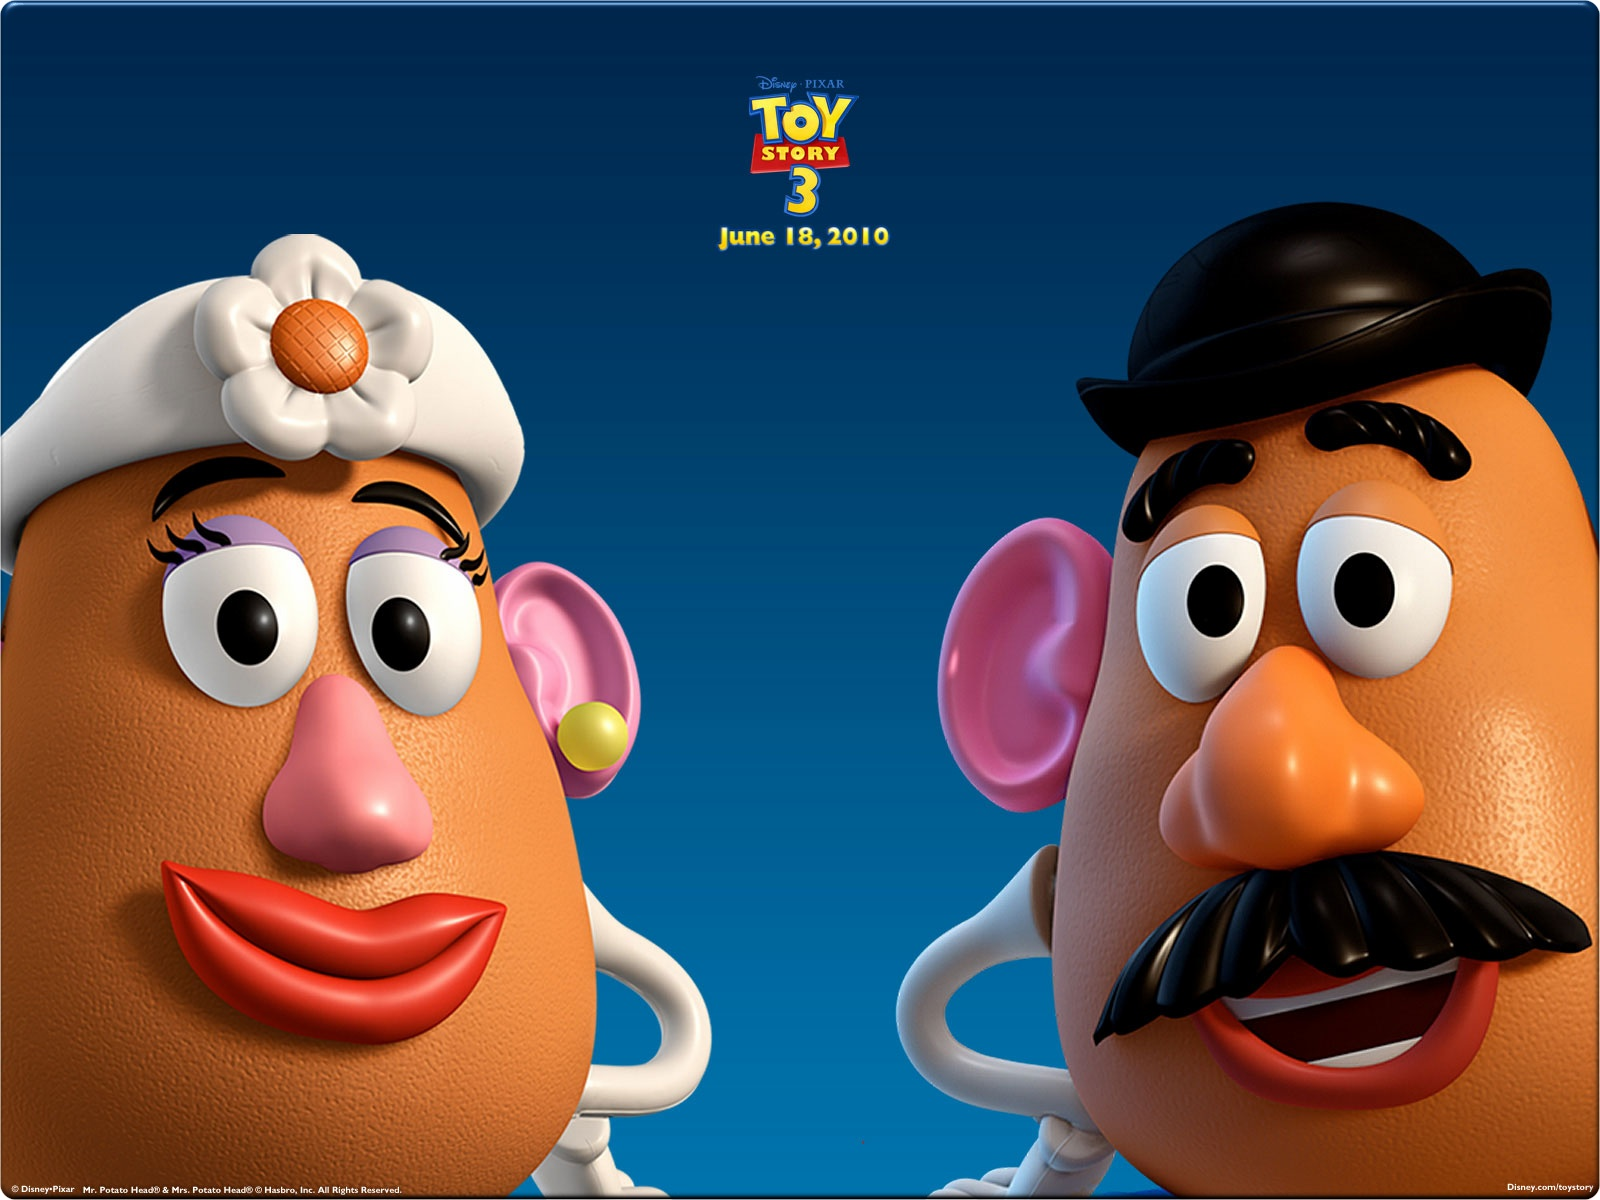 http://s5.picofile.com/file/8134076442/we2sisters_mihanblog_com_Toy_Story_3_Wallpaper_gallery_1_7341.jpg